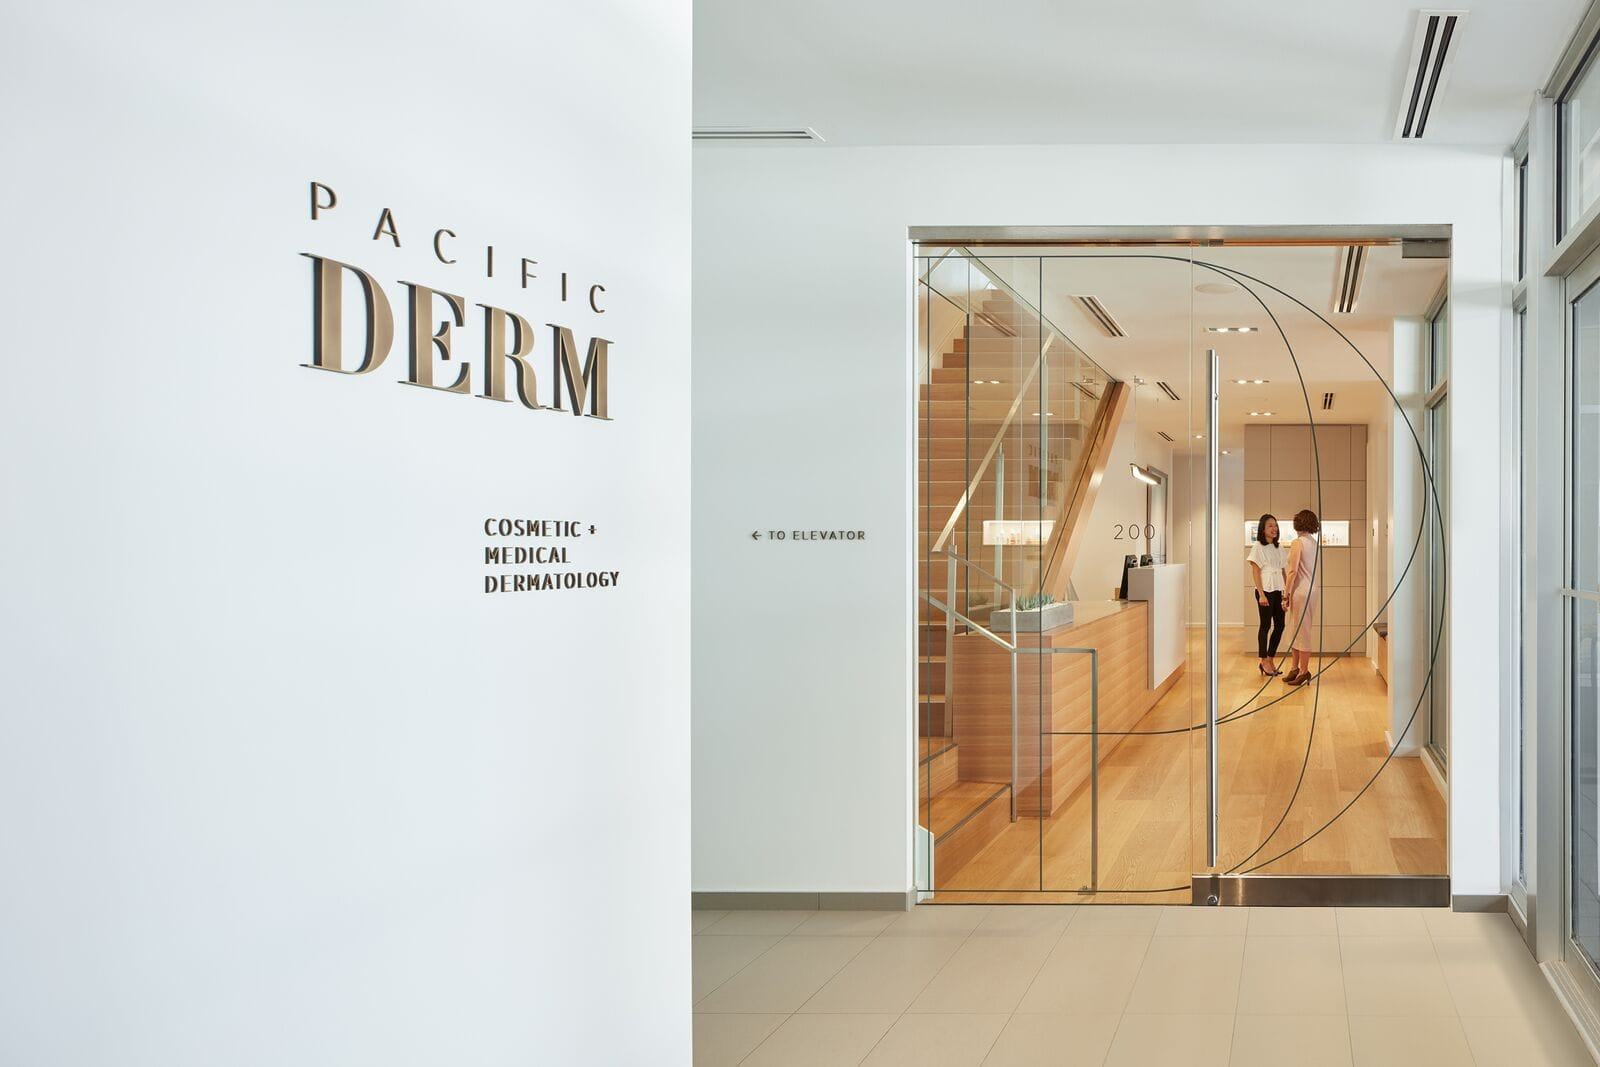 Косметологический центр Pacific Derm в Ванкувере от бюро Mcfarlane Green Biggar Architecture + Design, HQ architecture, HQarch, HQ arch, high quality architecture